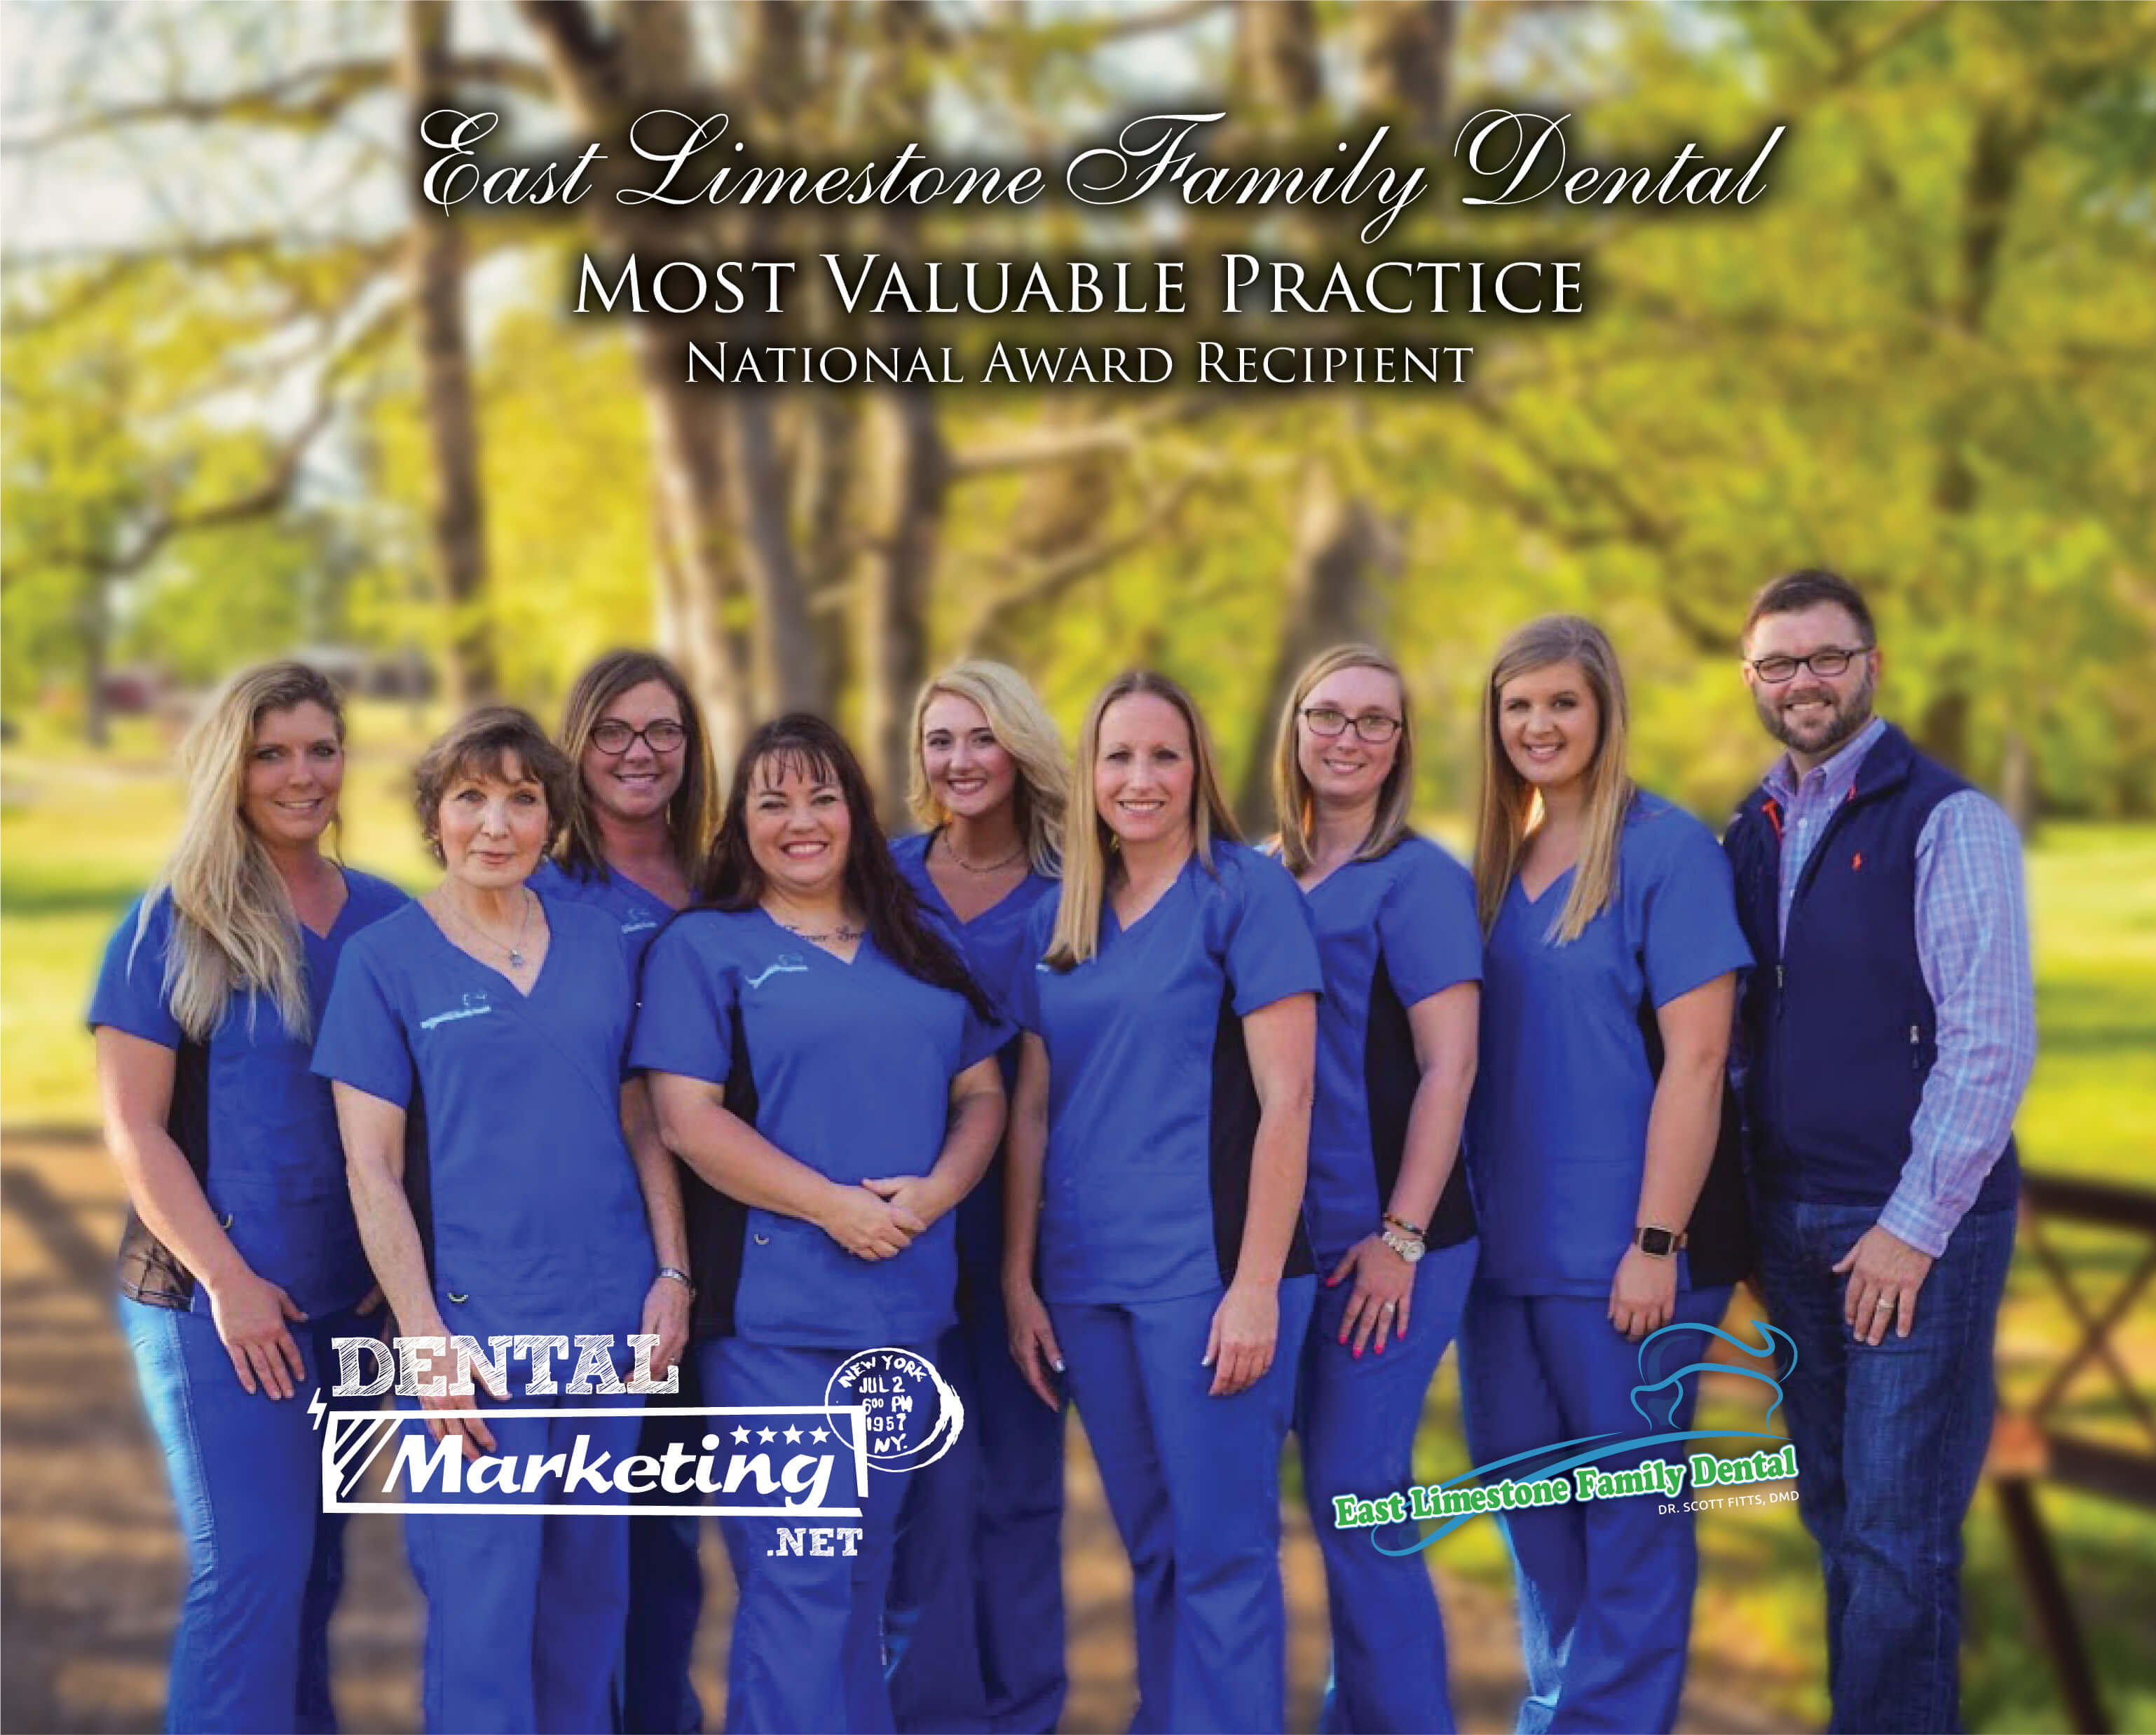 Limestone Family Dental Staff